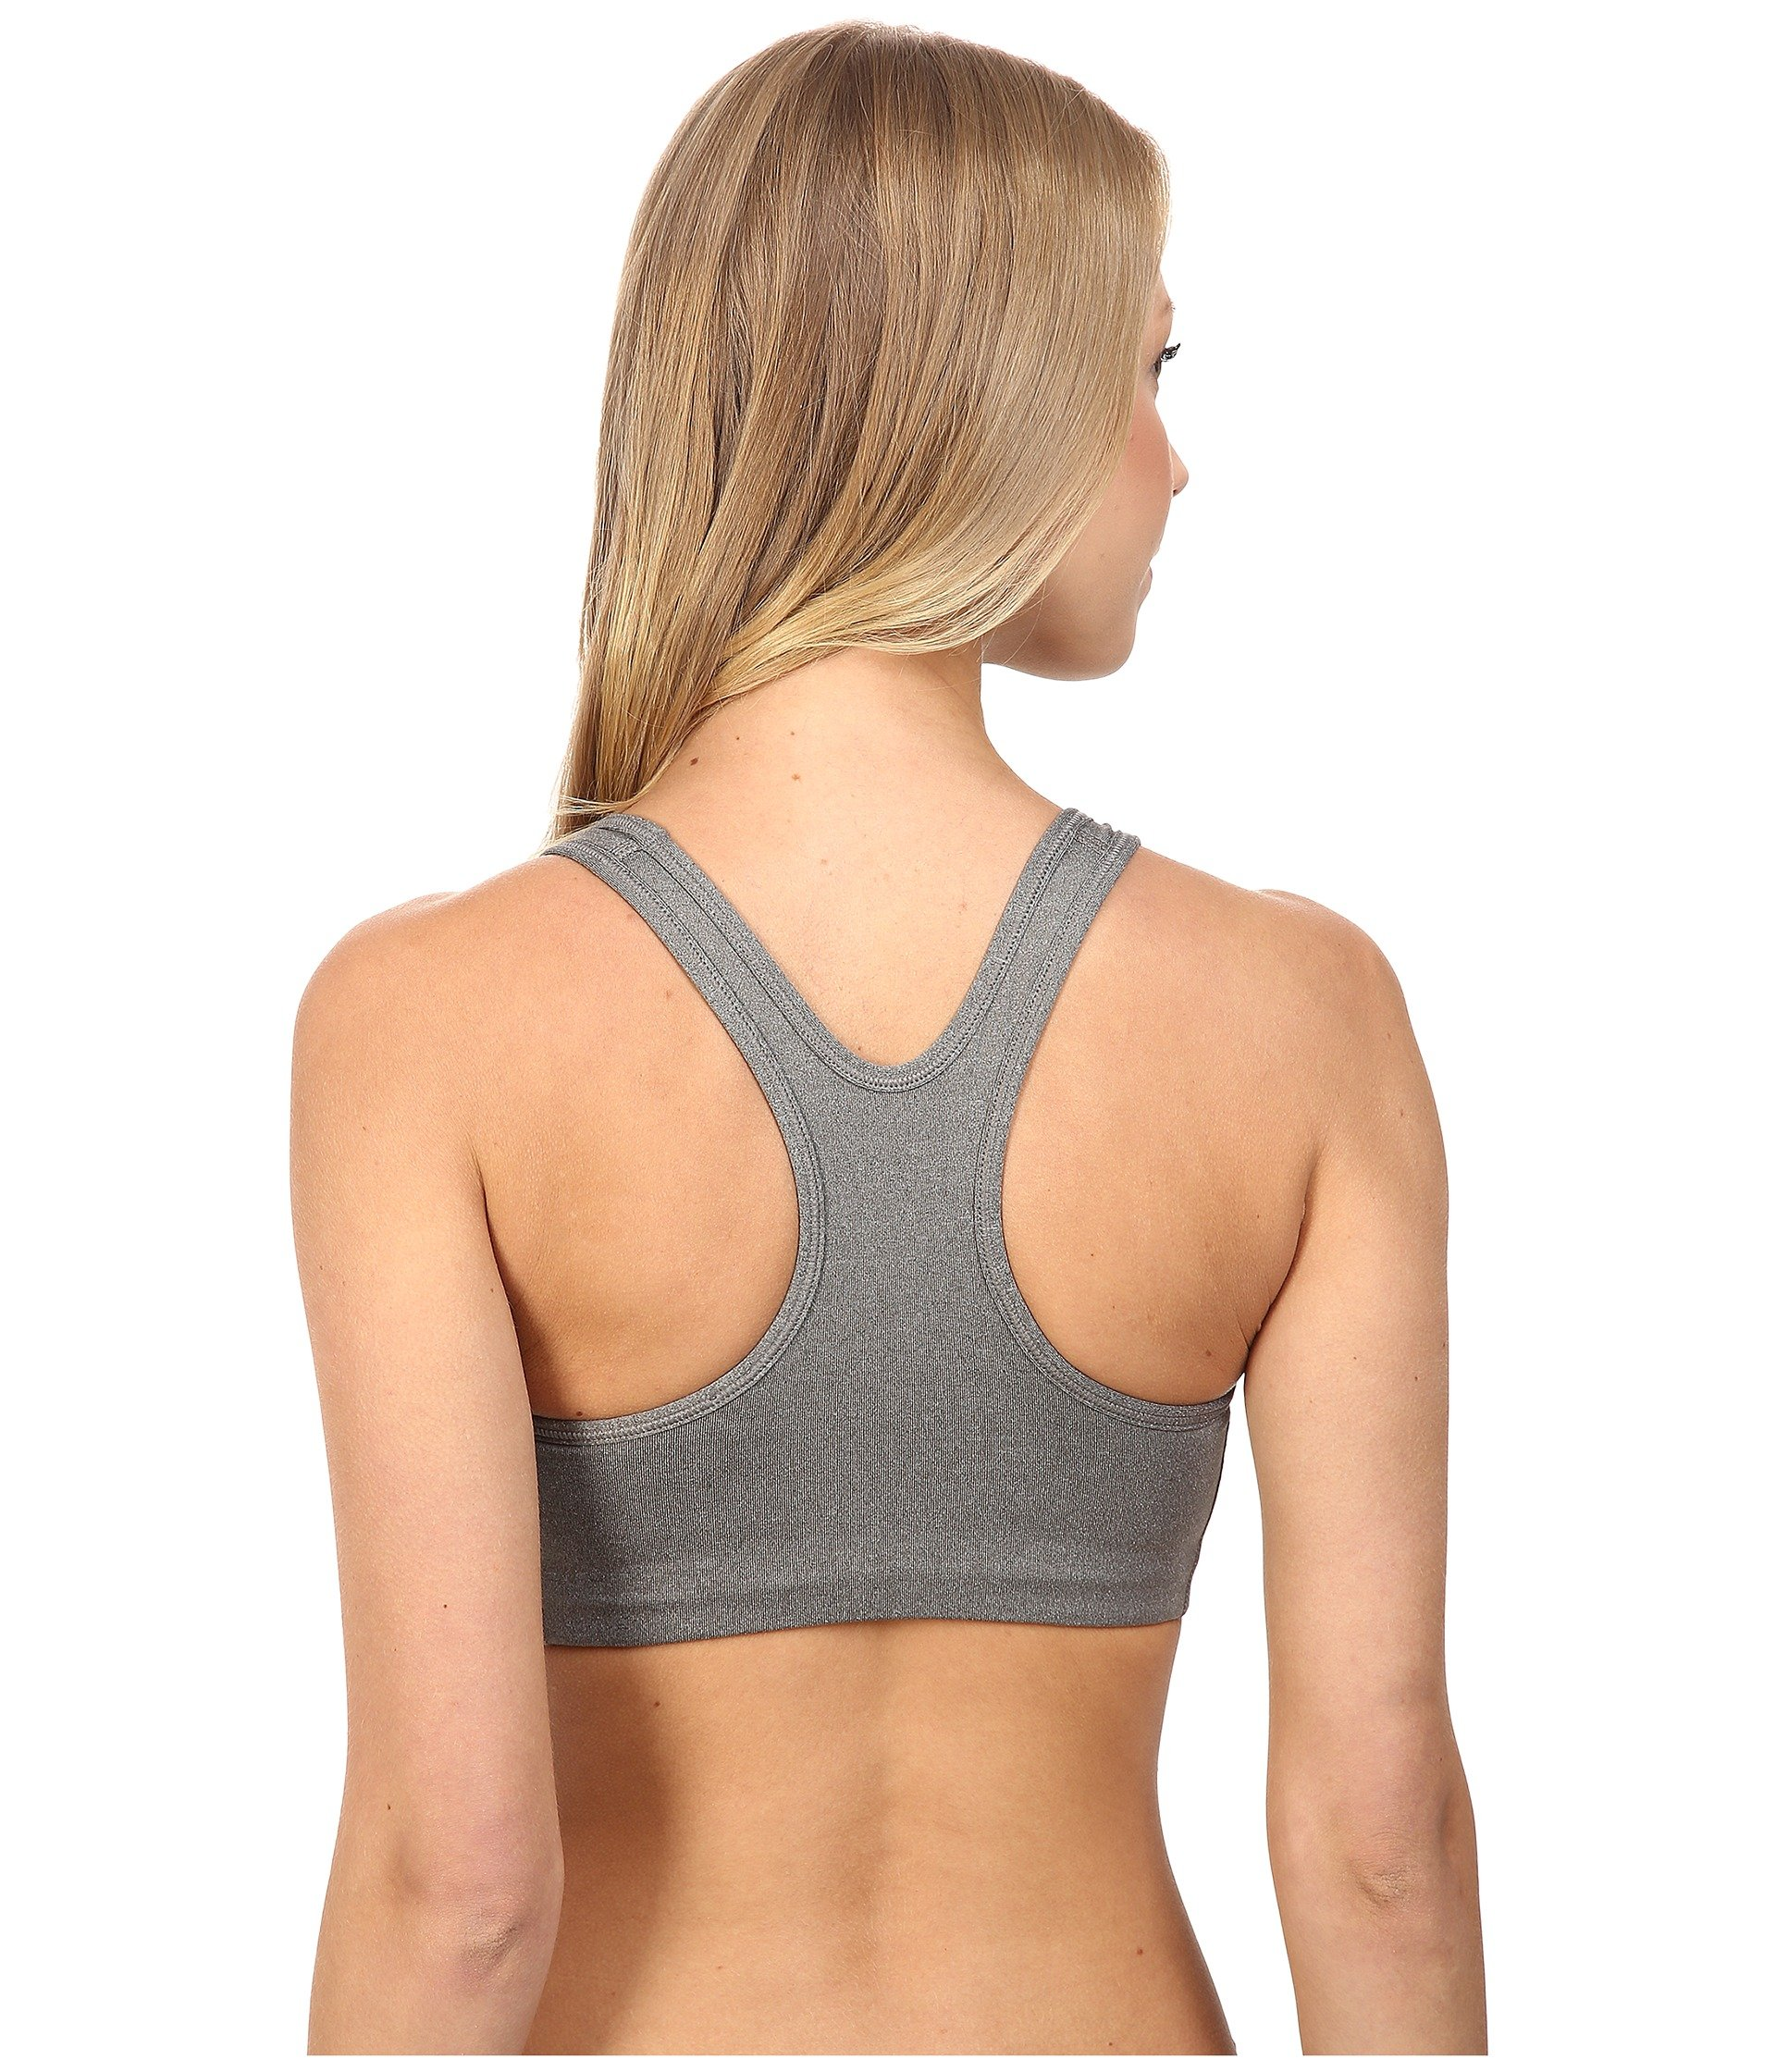 NIKE Women's Swoosh Sports Bra, Carbon Heather/Anthracite/Black, Small by Nike (Image #3)